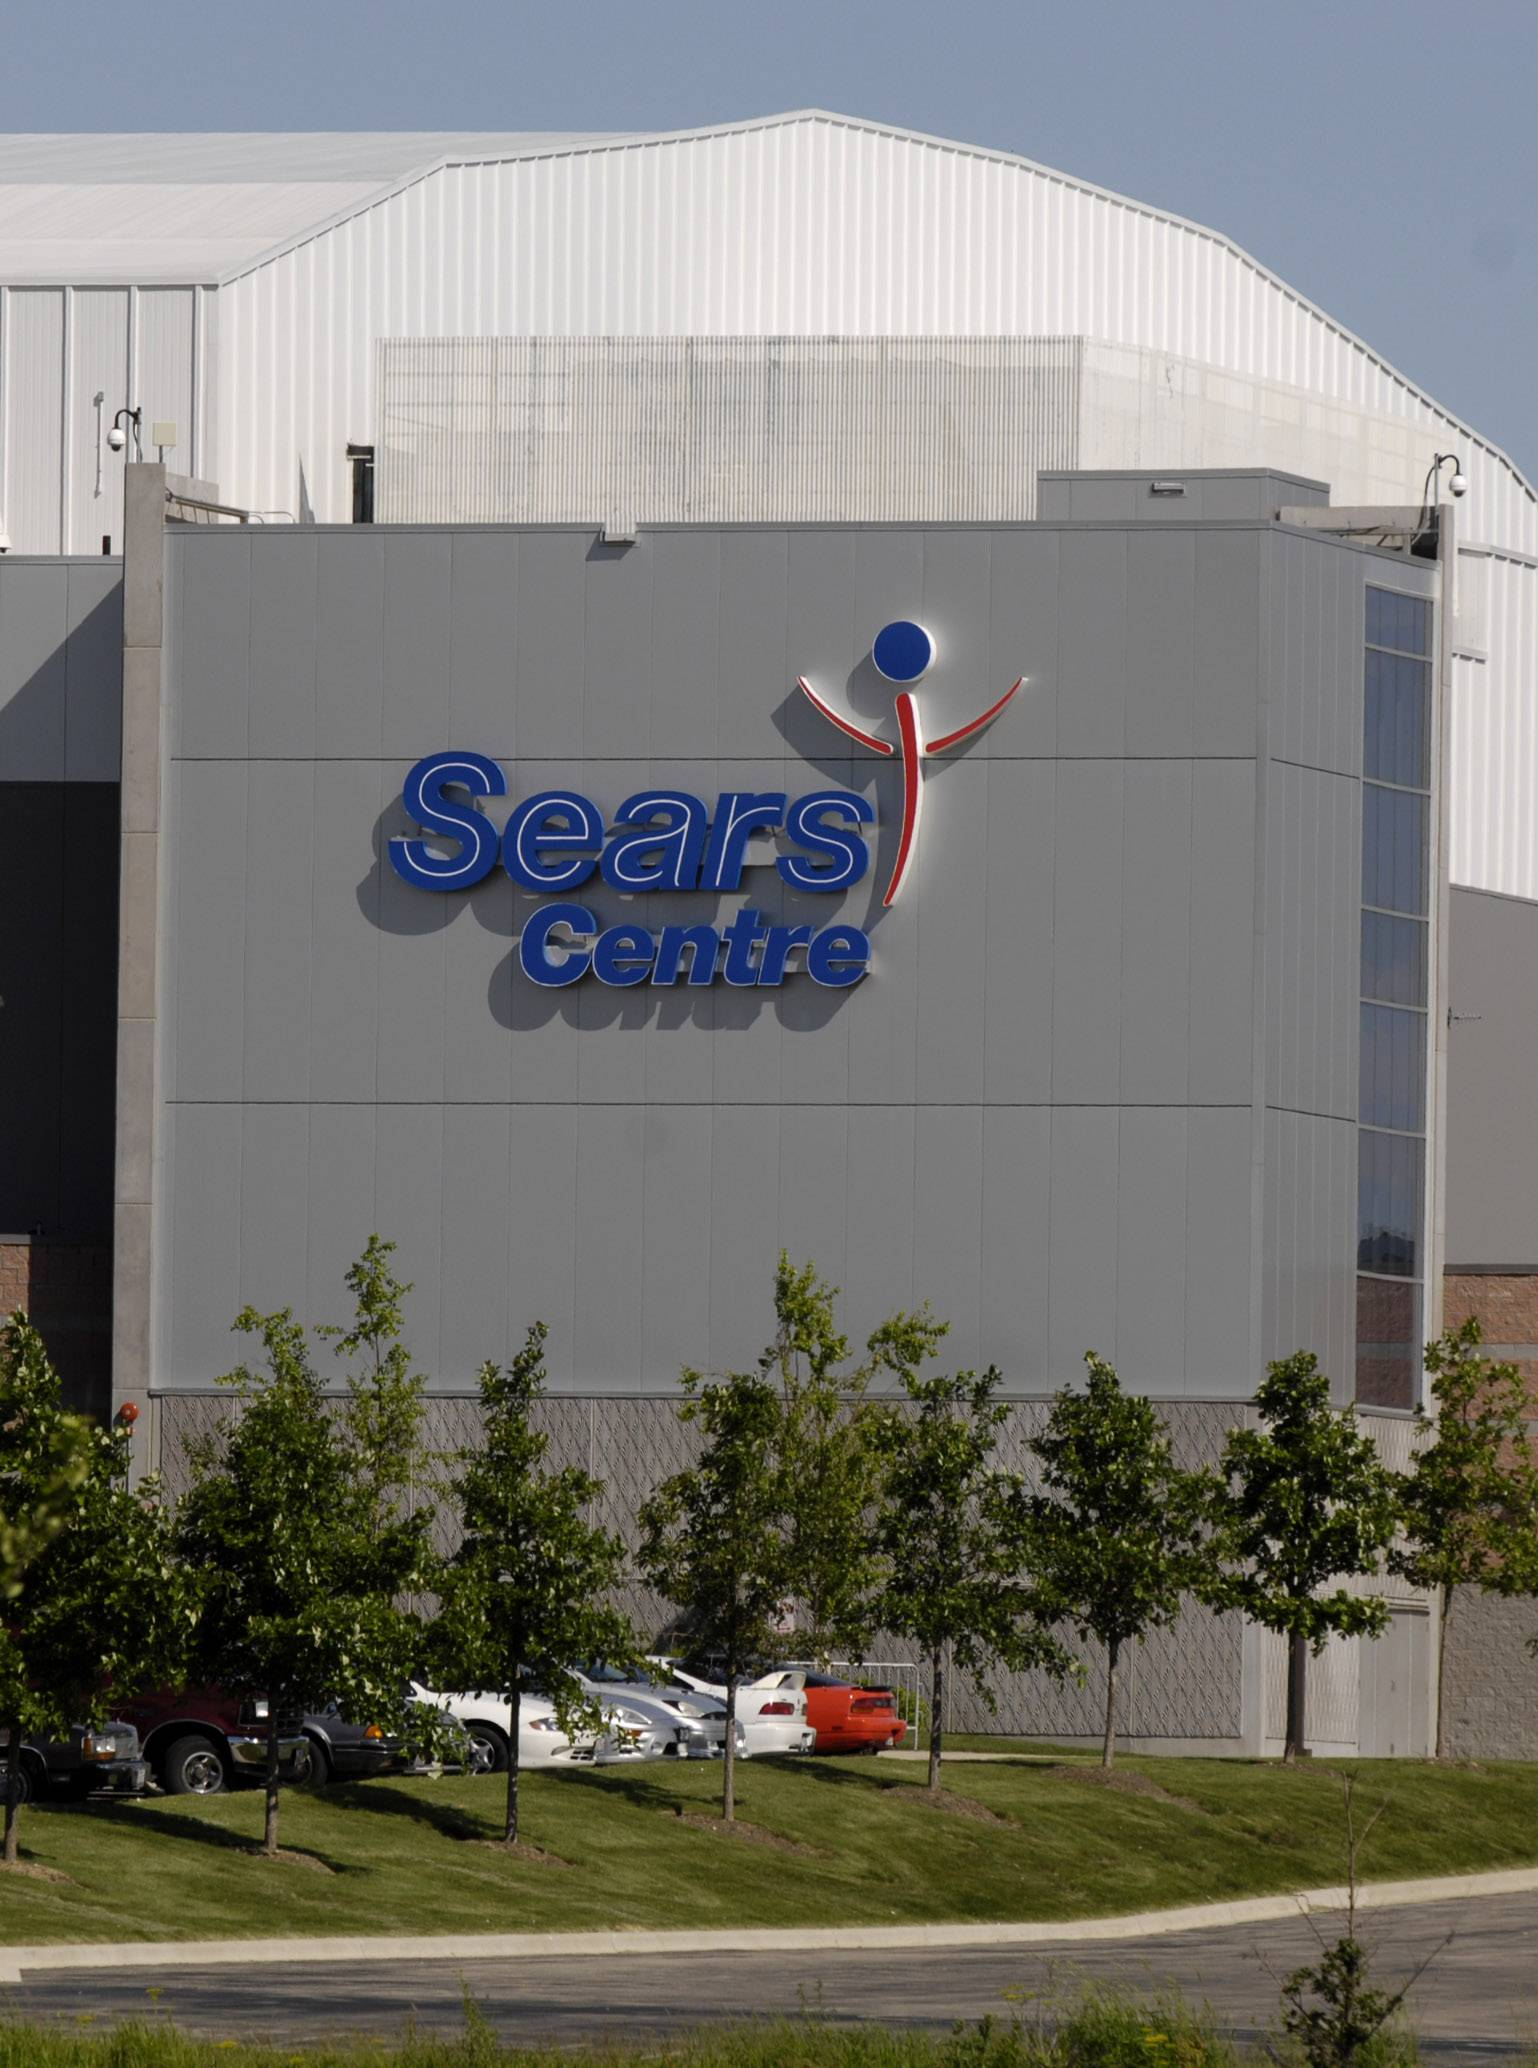 A proposed $1.8 million agreement would allow Sears Holdings Corp. to keep the naming rights for the decade-old Sears Centre Arena in Hoffman Estates for at least three more years.